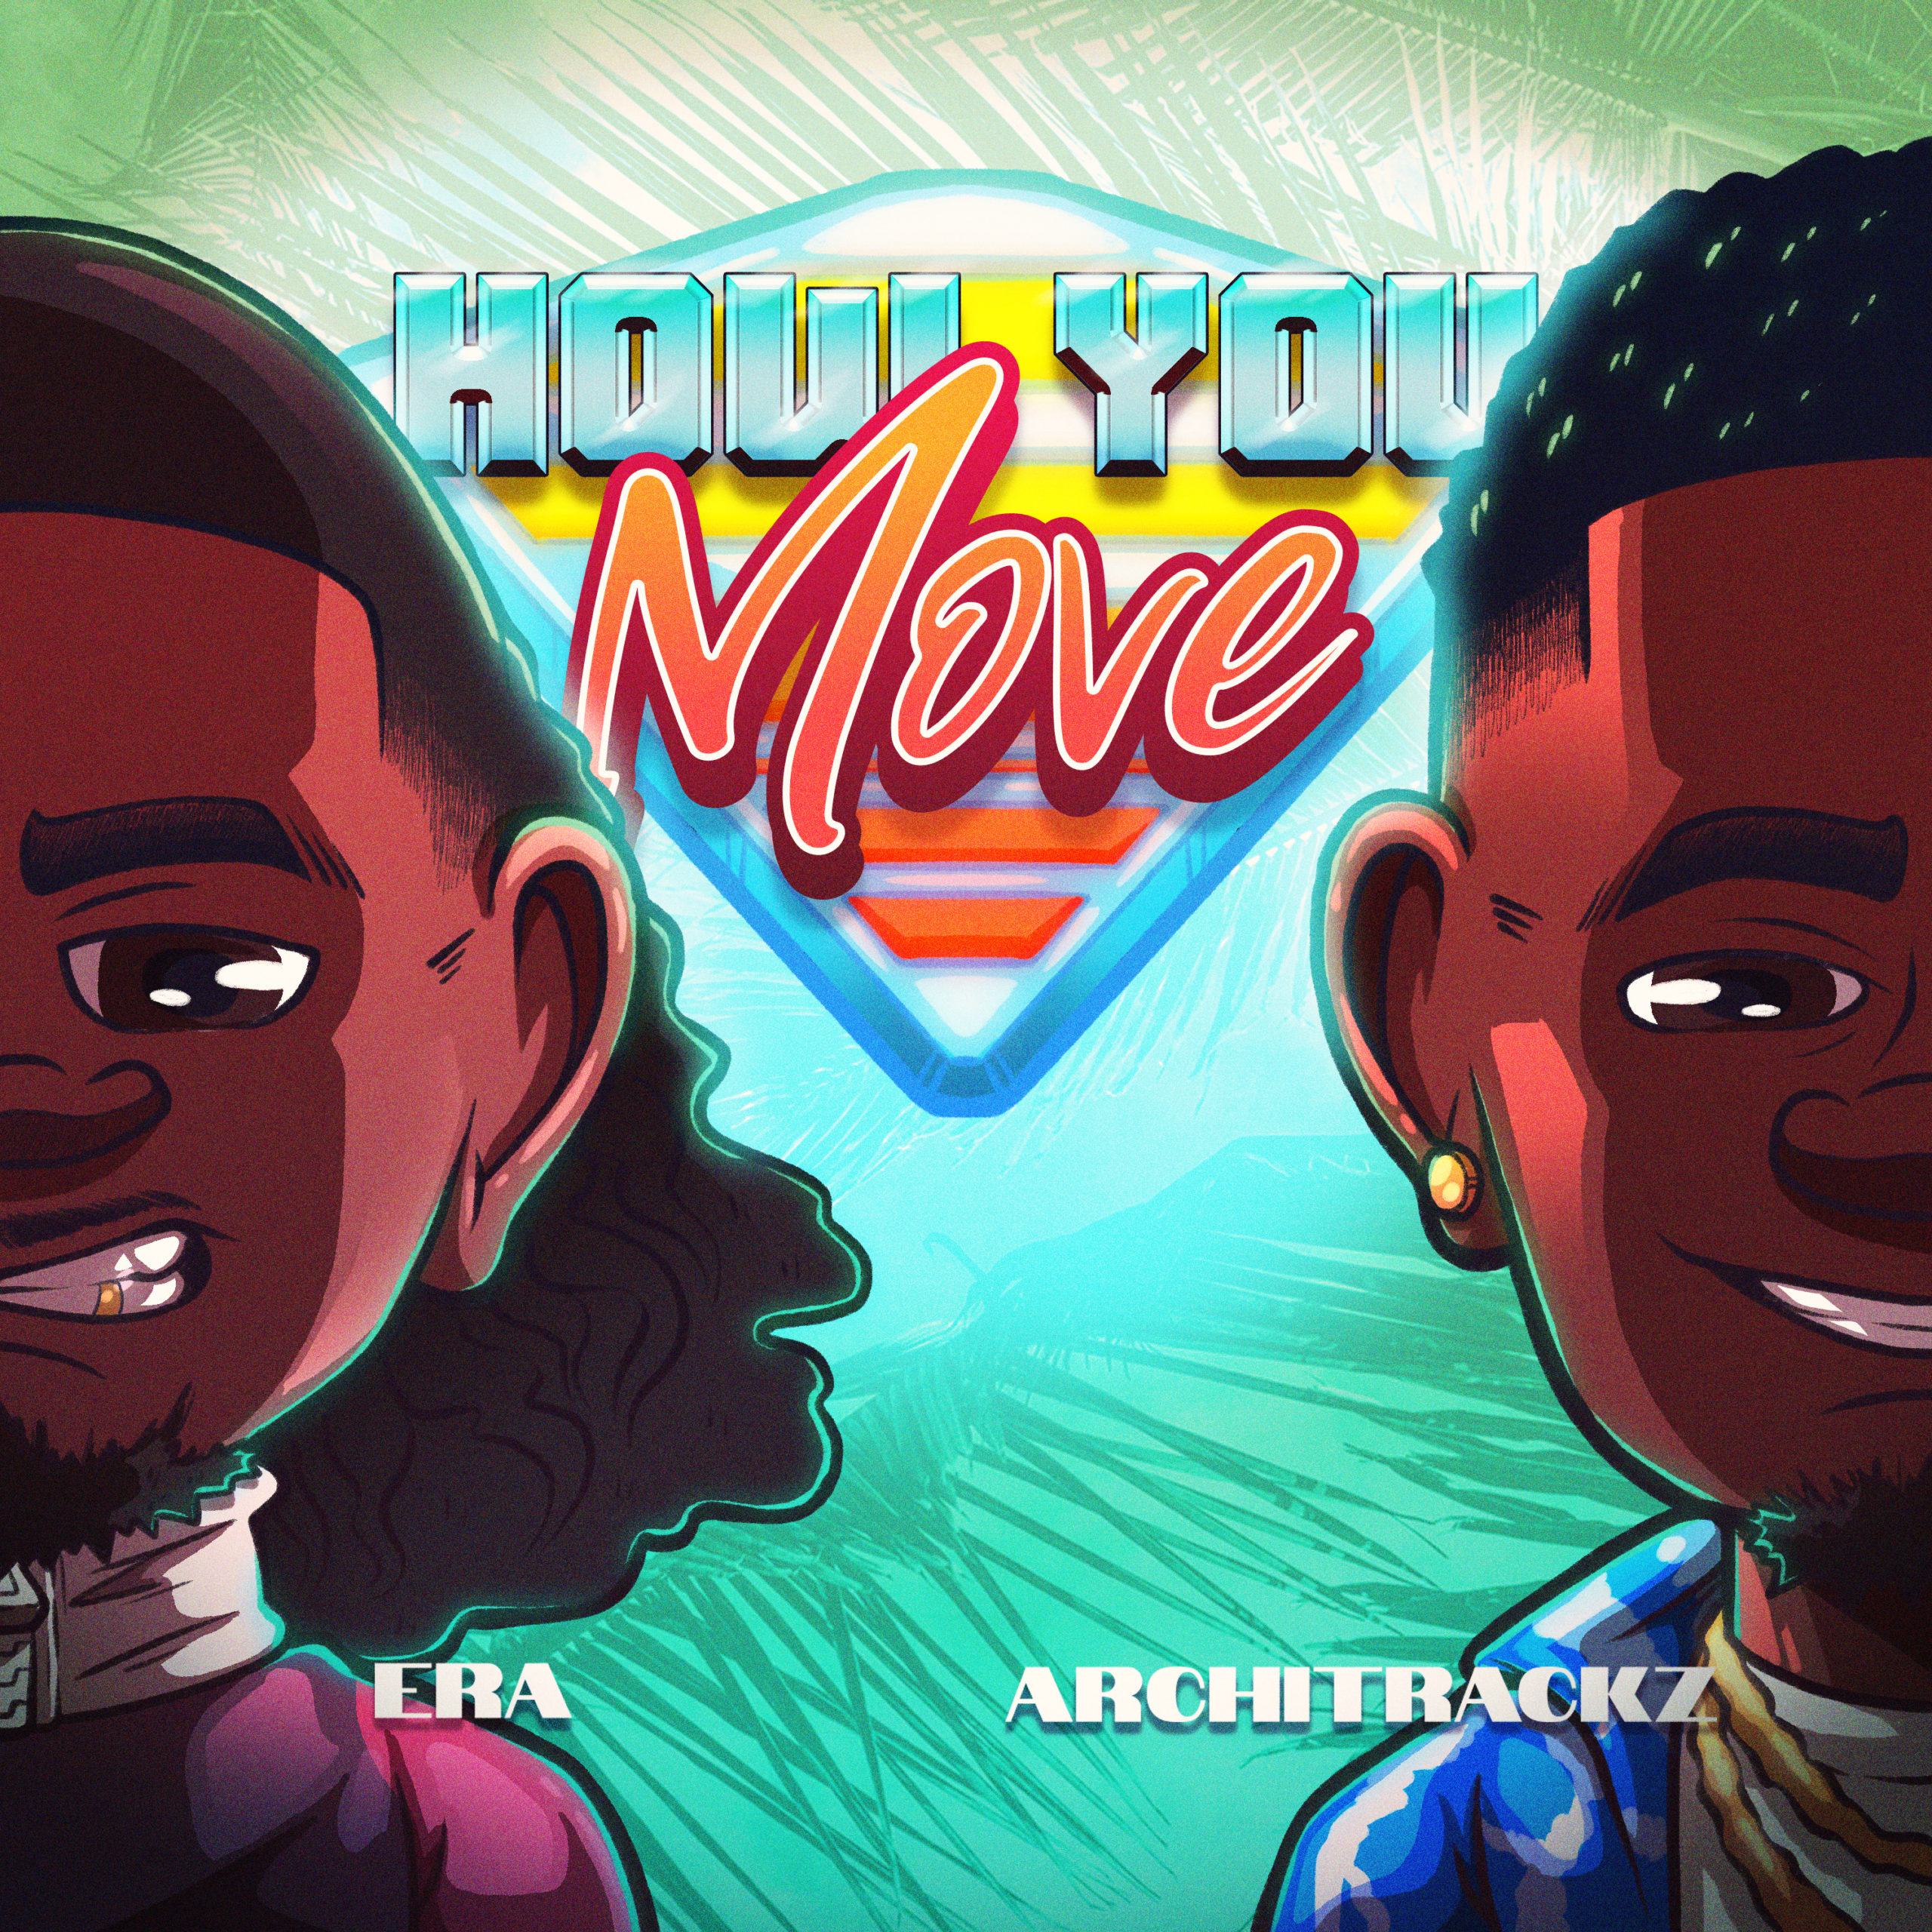 [OUT NOW] ERA – HOW YOU MOVE FT. ARCHITRACKZ